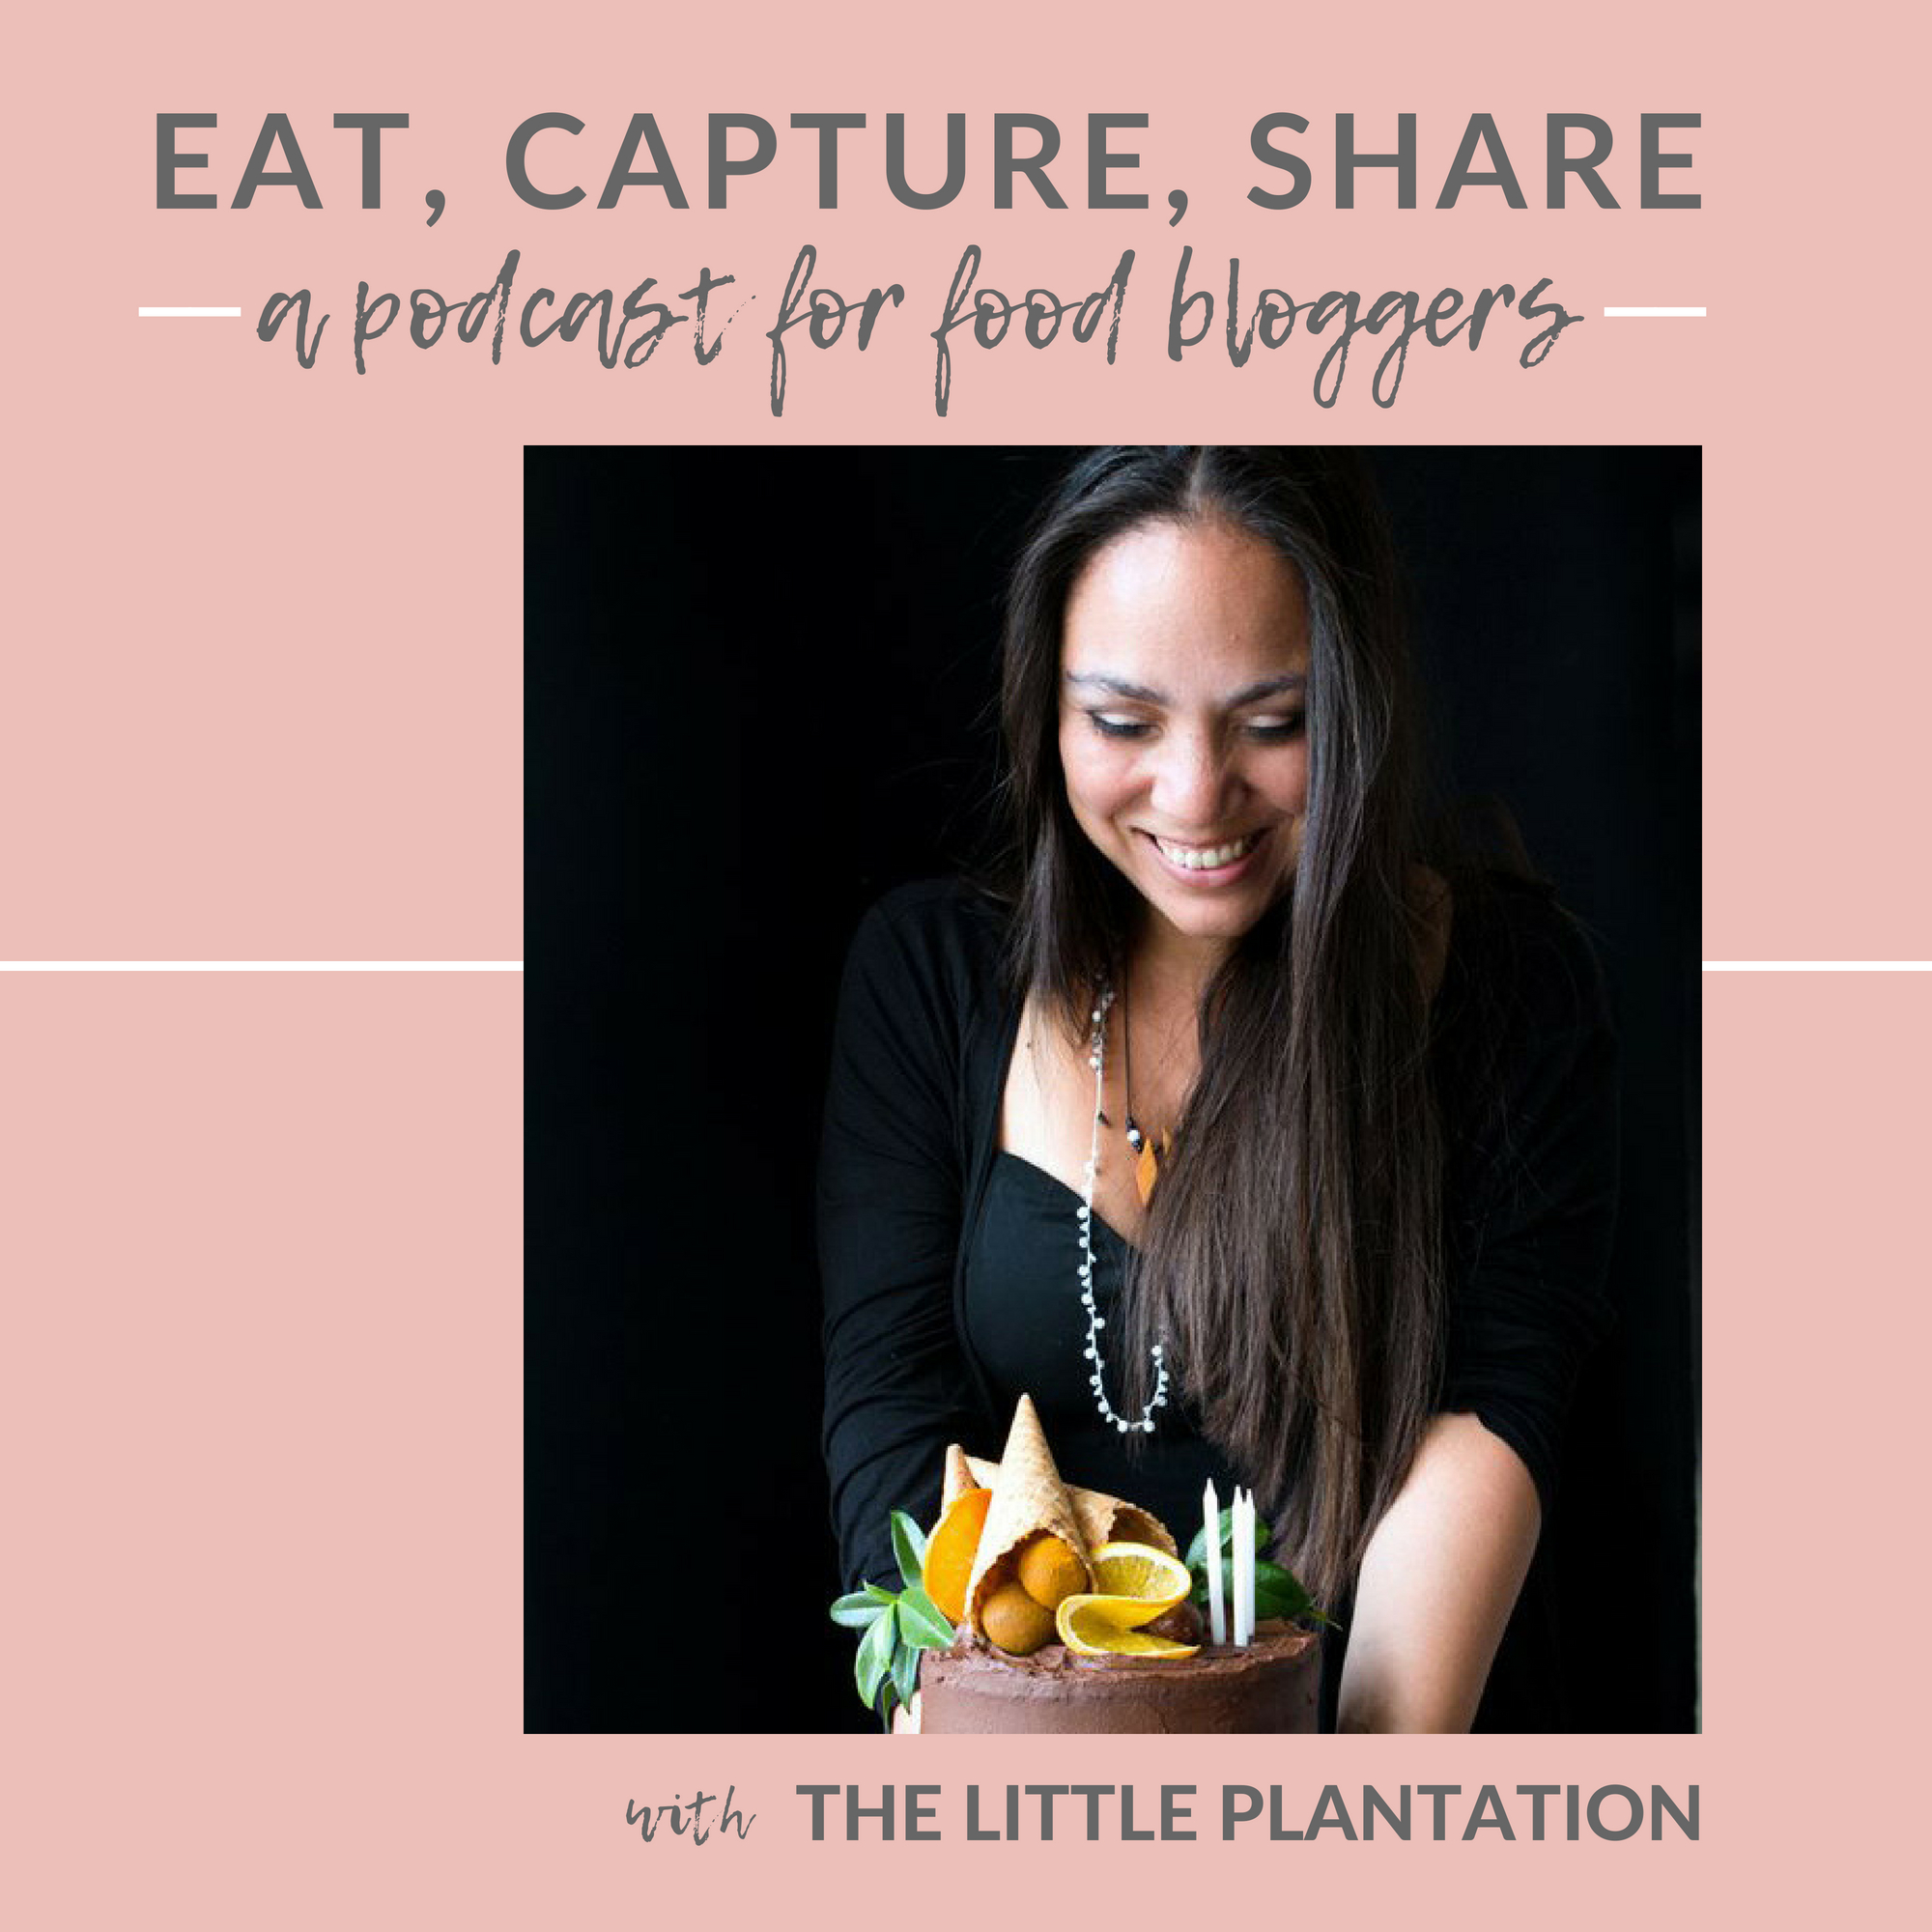 #11 BONUS! The 6 biggest food photography, blogging and instagram trends for 2019!